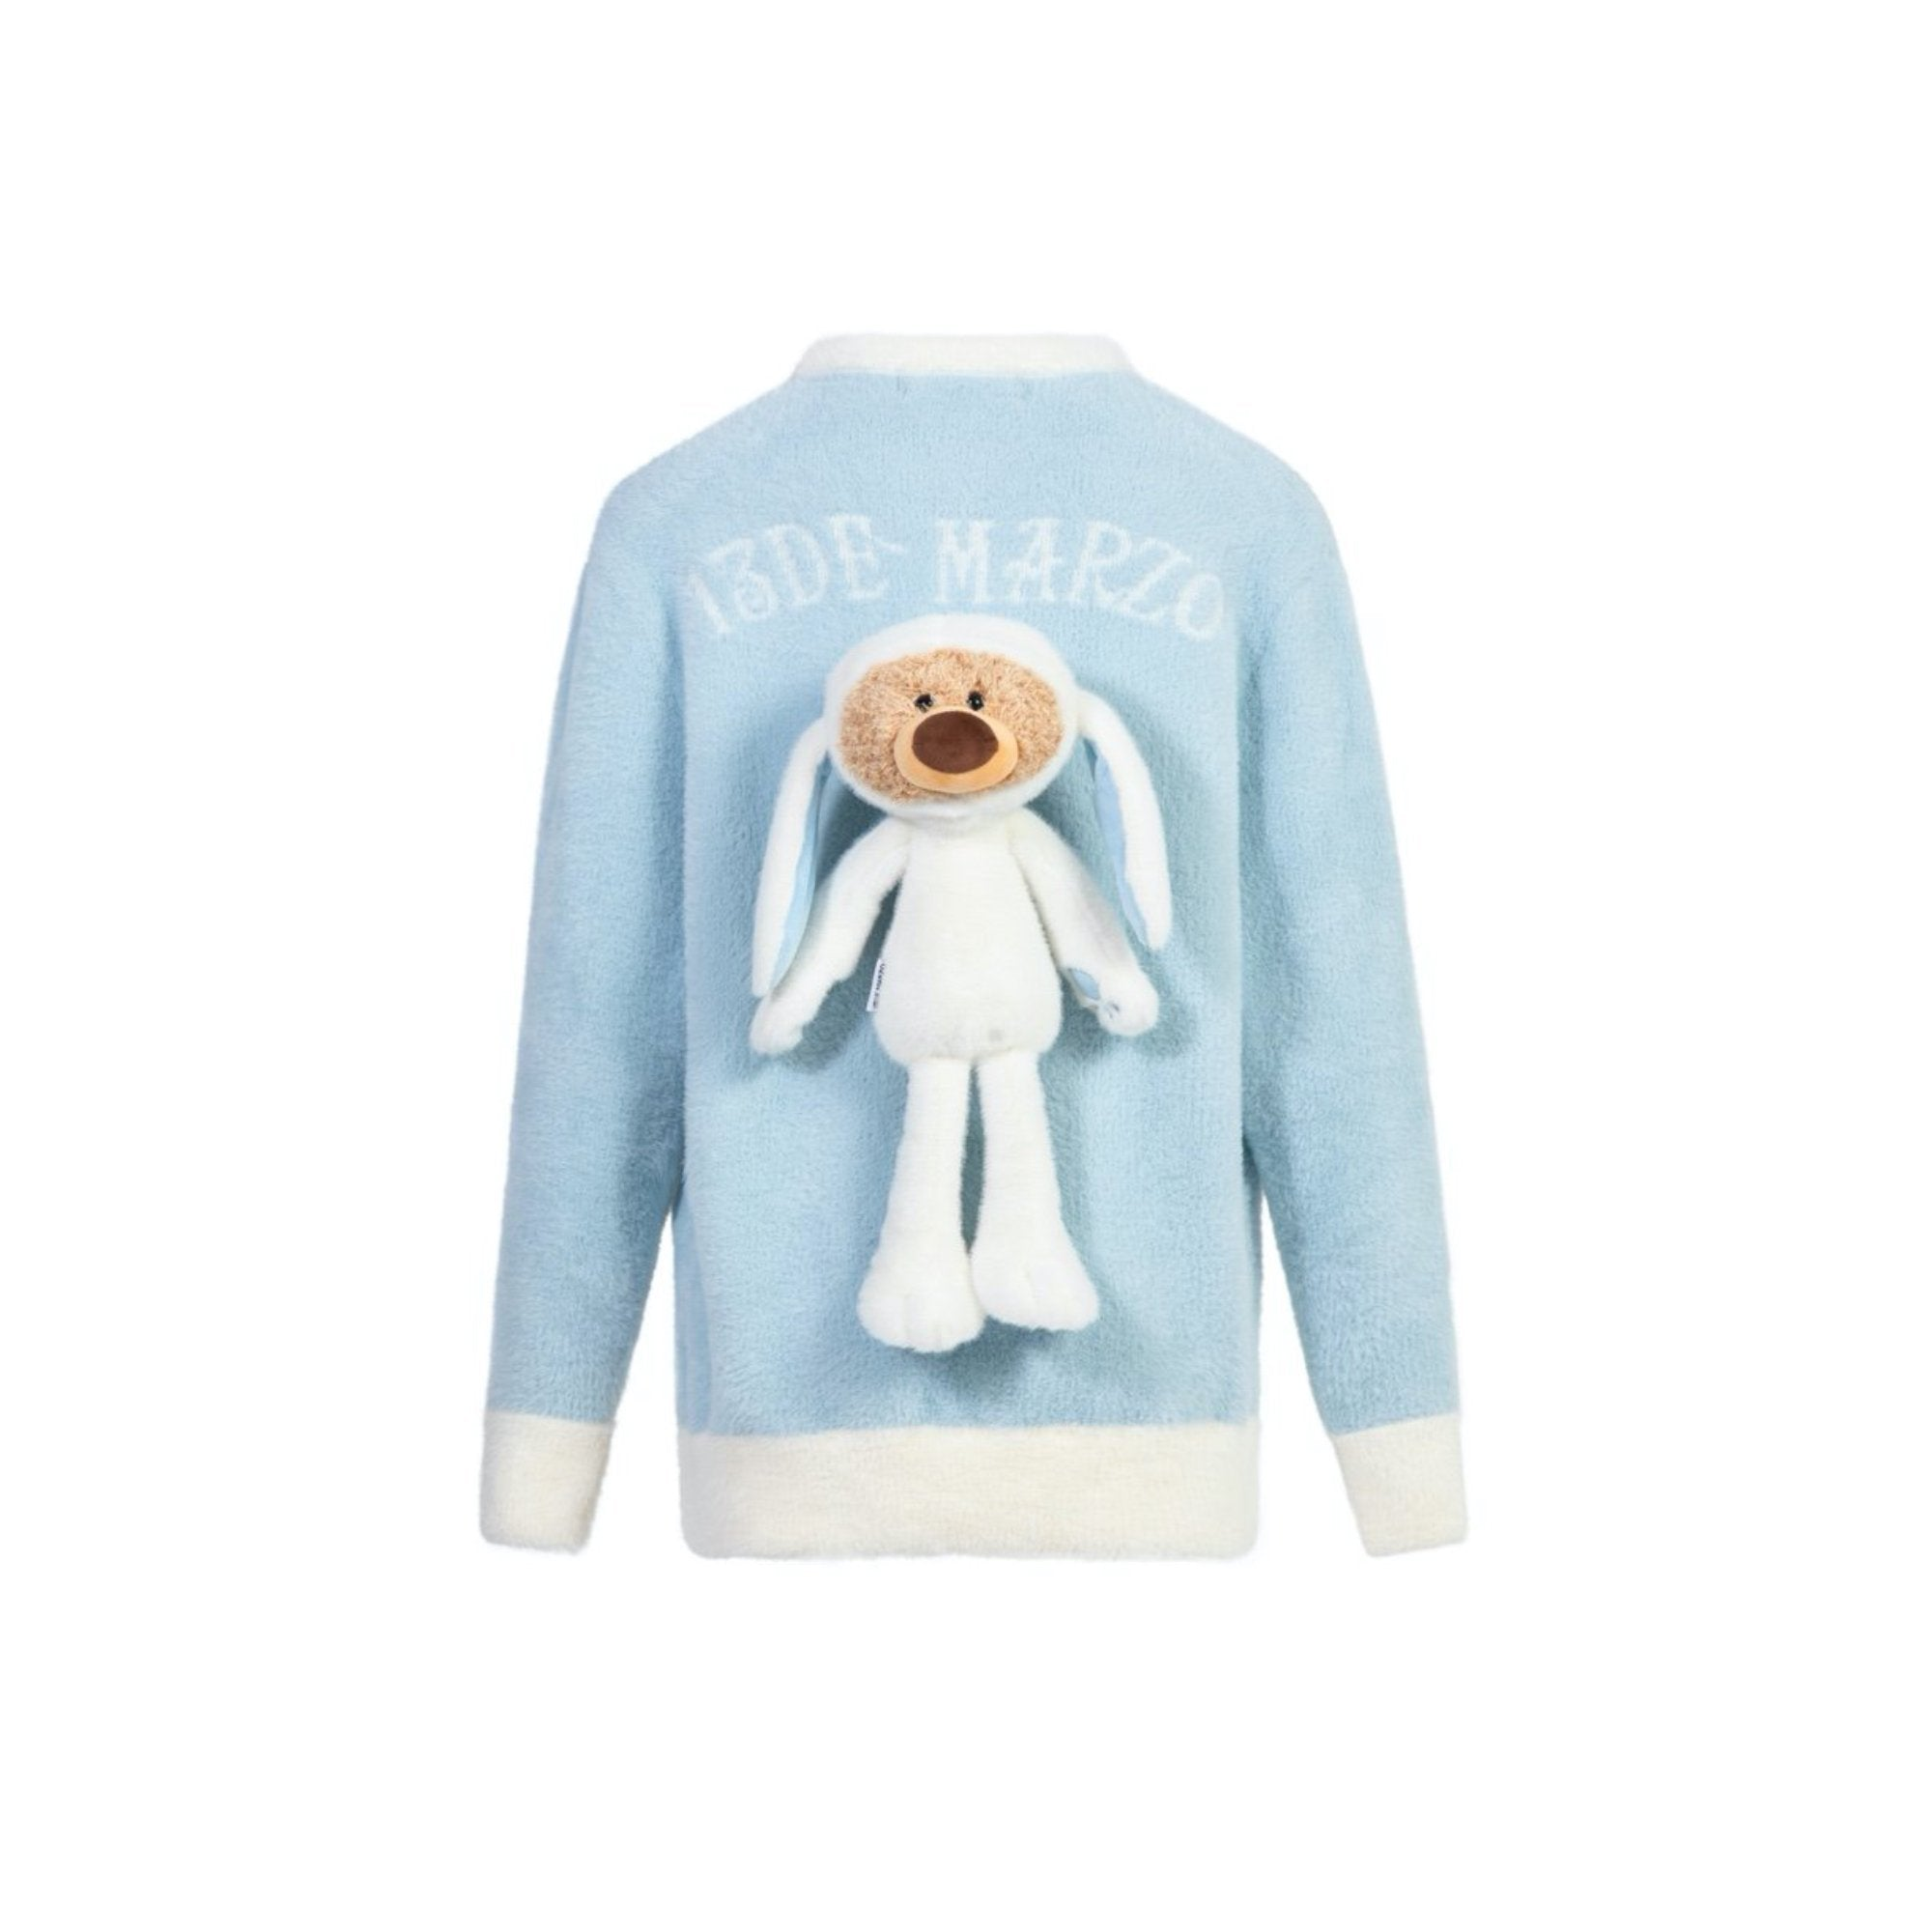 13 DE MARZO Teddy Bear Rabbit Costume Cardigan Blue | MADA IN CHINA